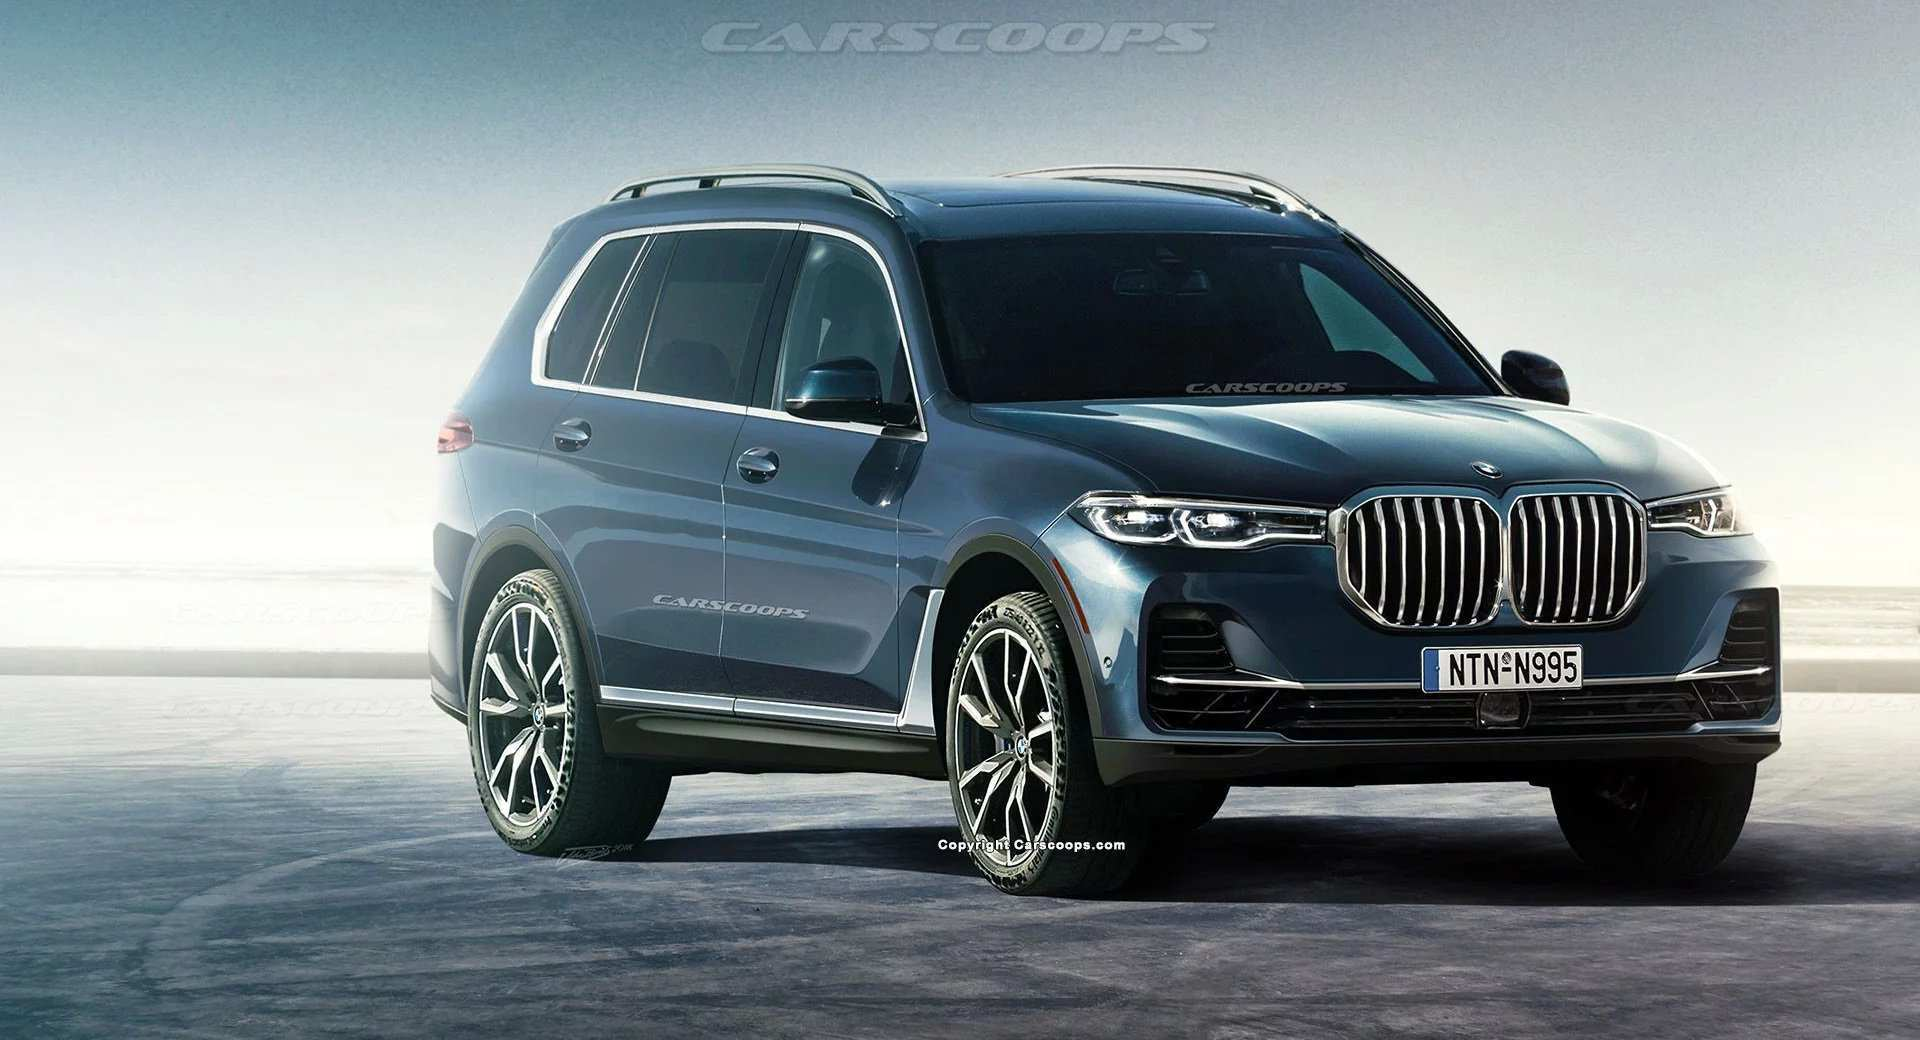 93 Great 2020 Bmw Suv Review for 2020 Bmw Suv